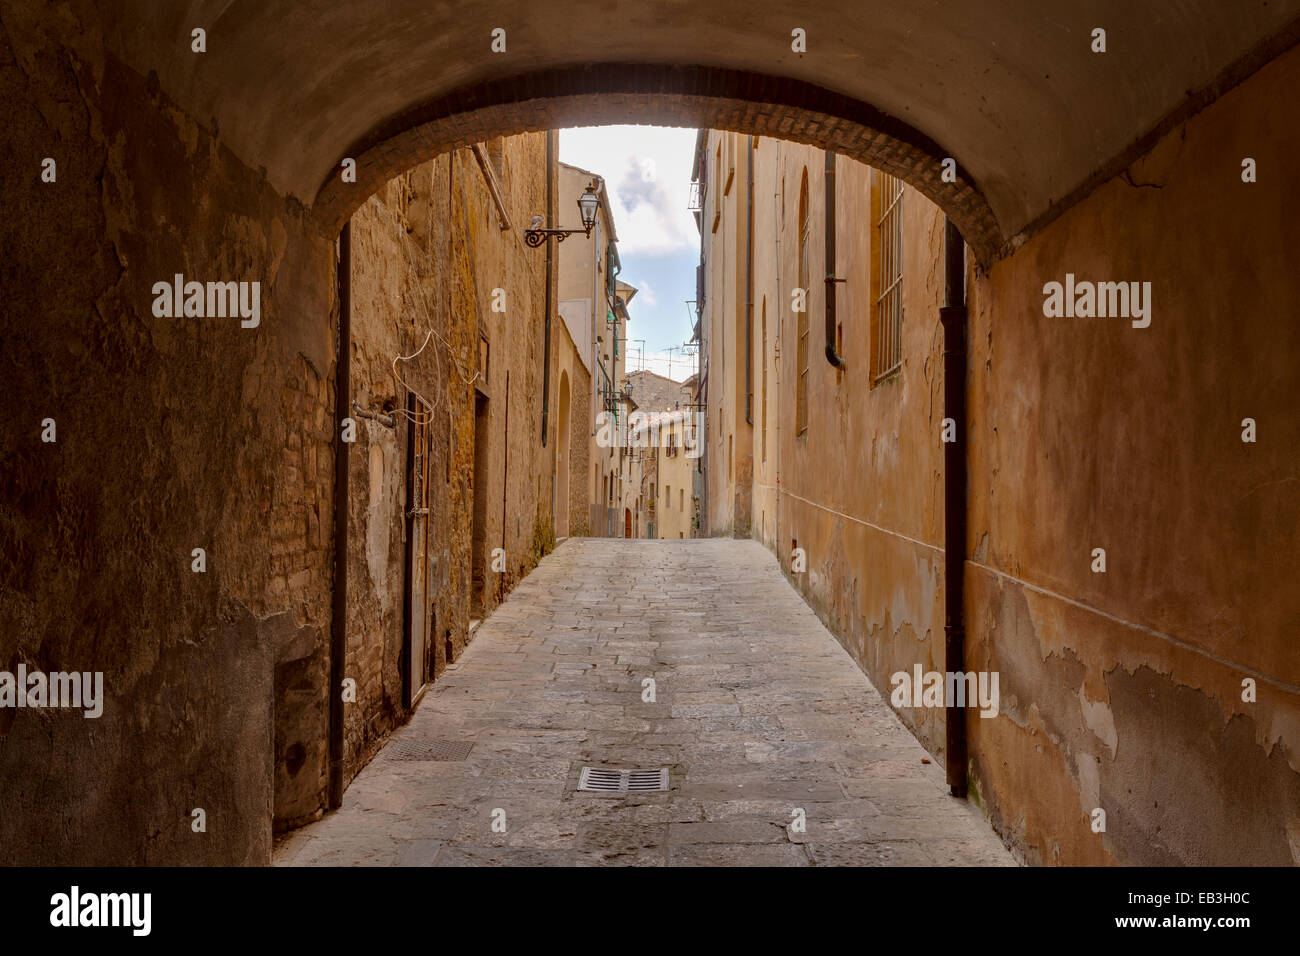 The narrow streets of Volterra, Tuscany. - Stock Image